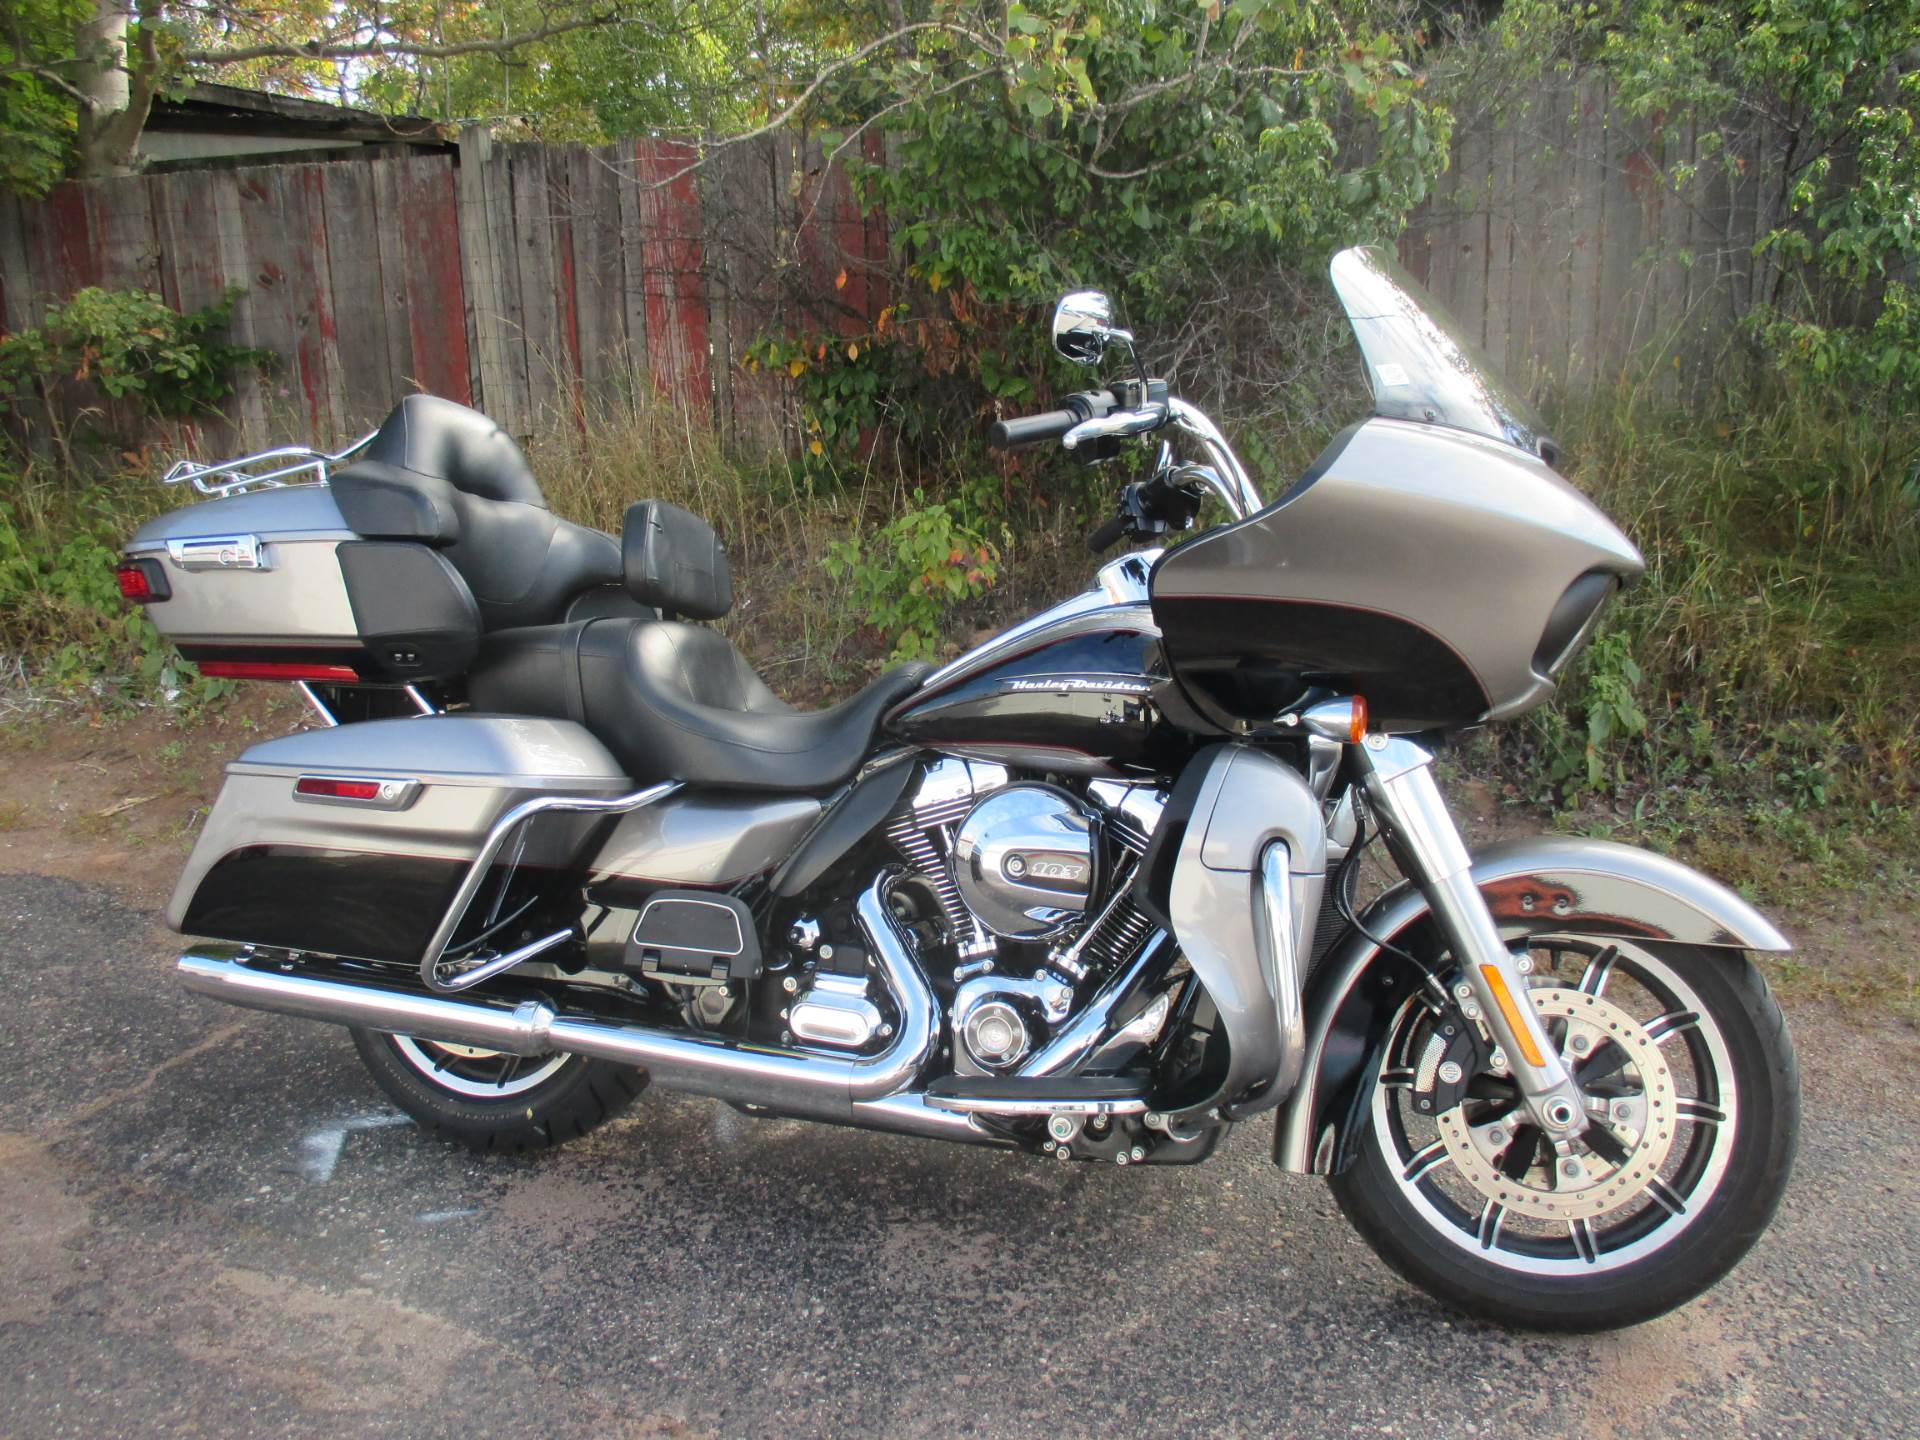 2016 Harley-Davidson ROAD GLIDE ULTRA in Marquette, Michigan